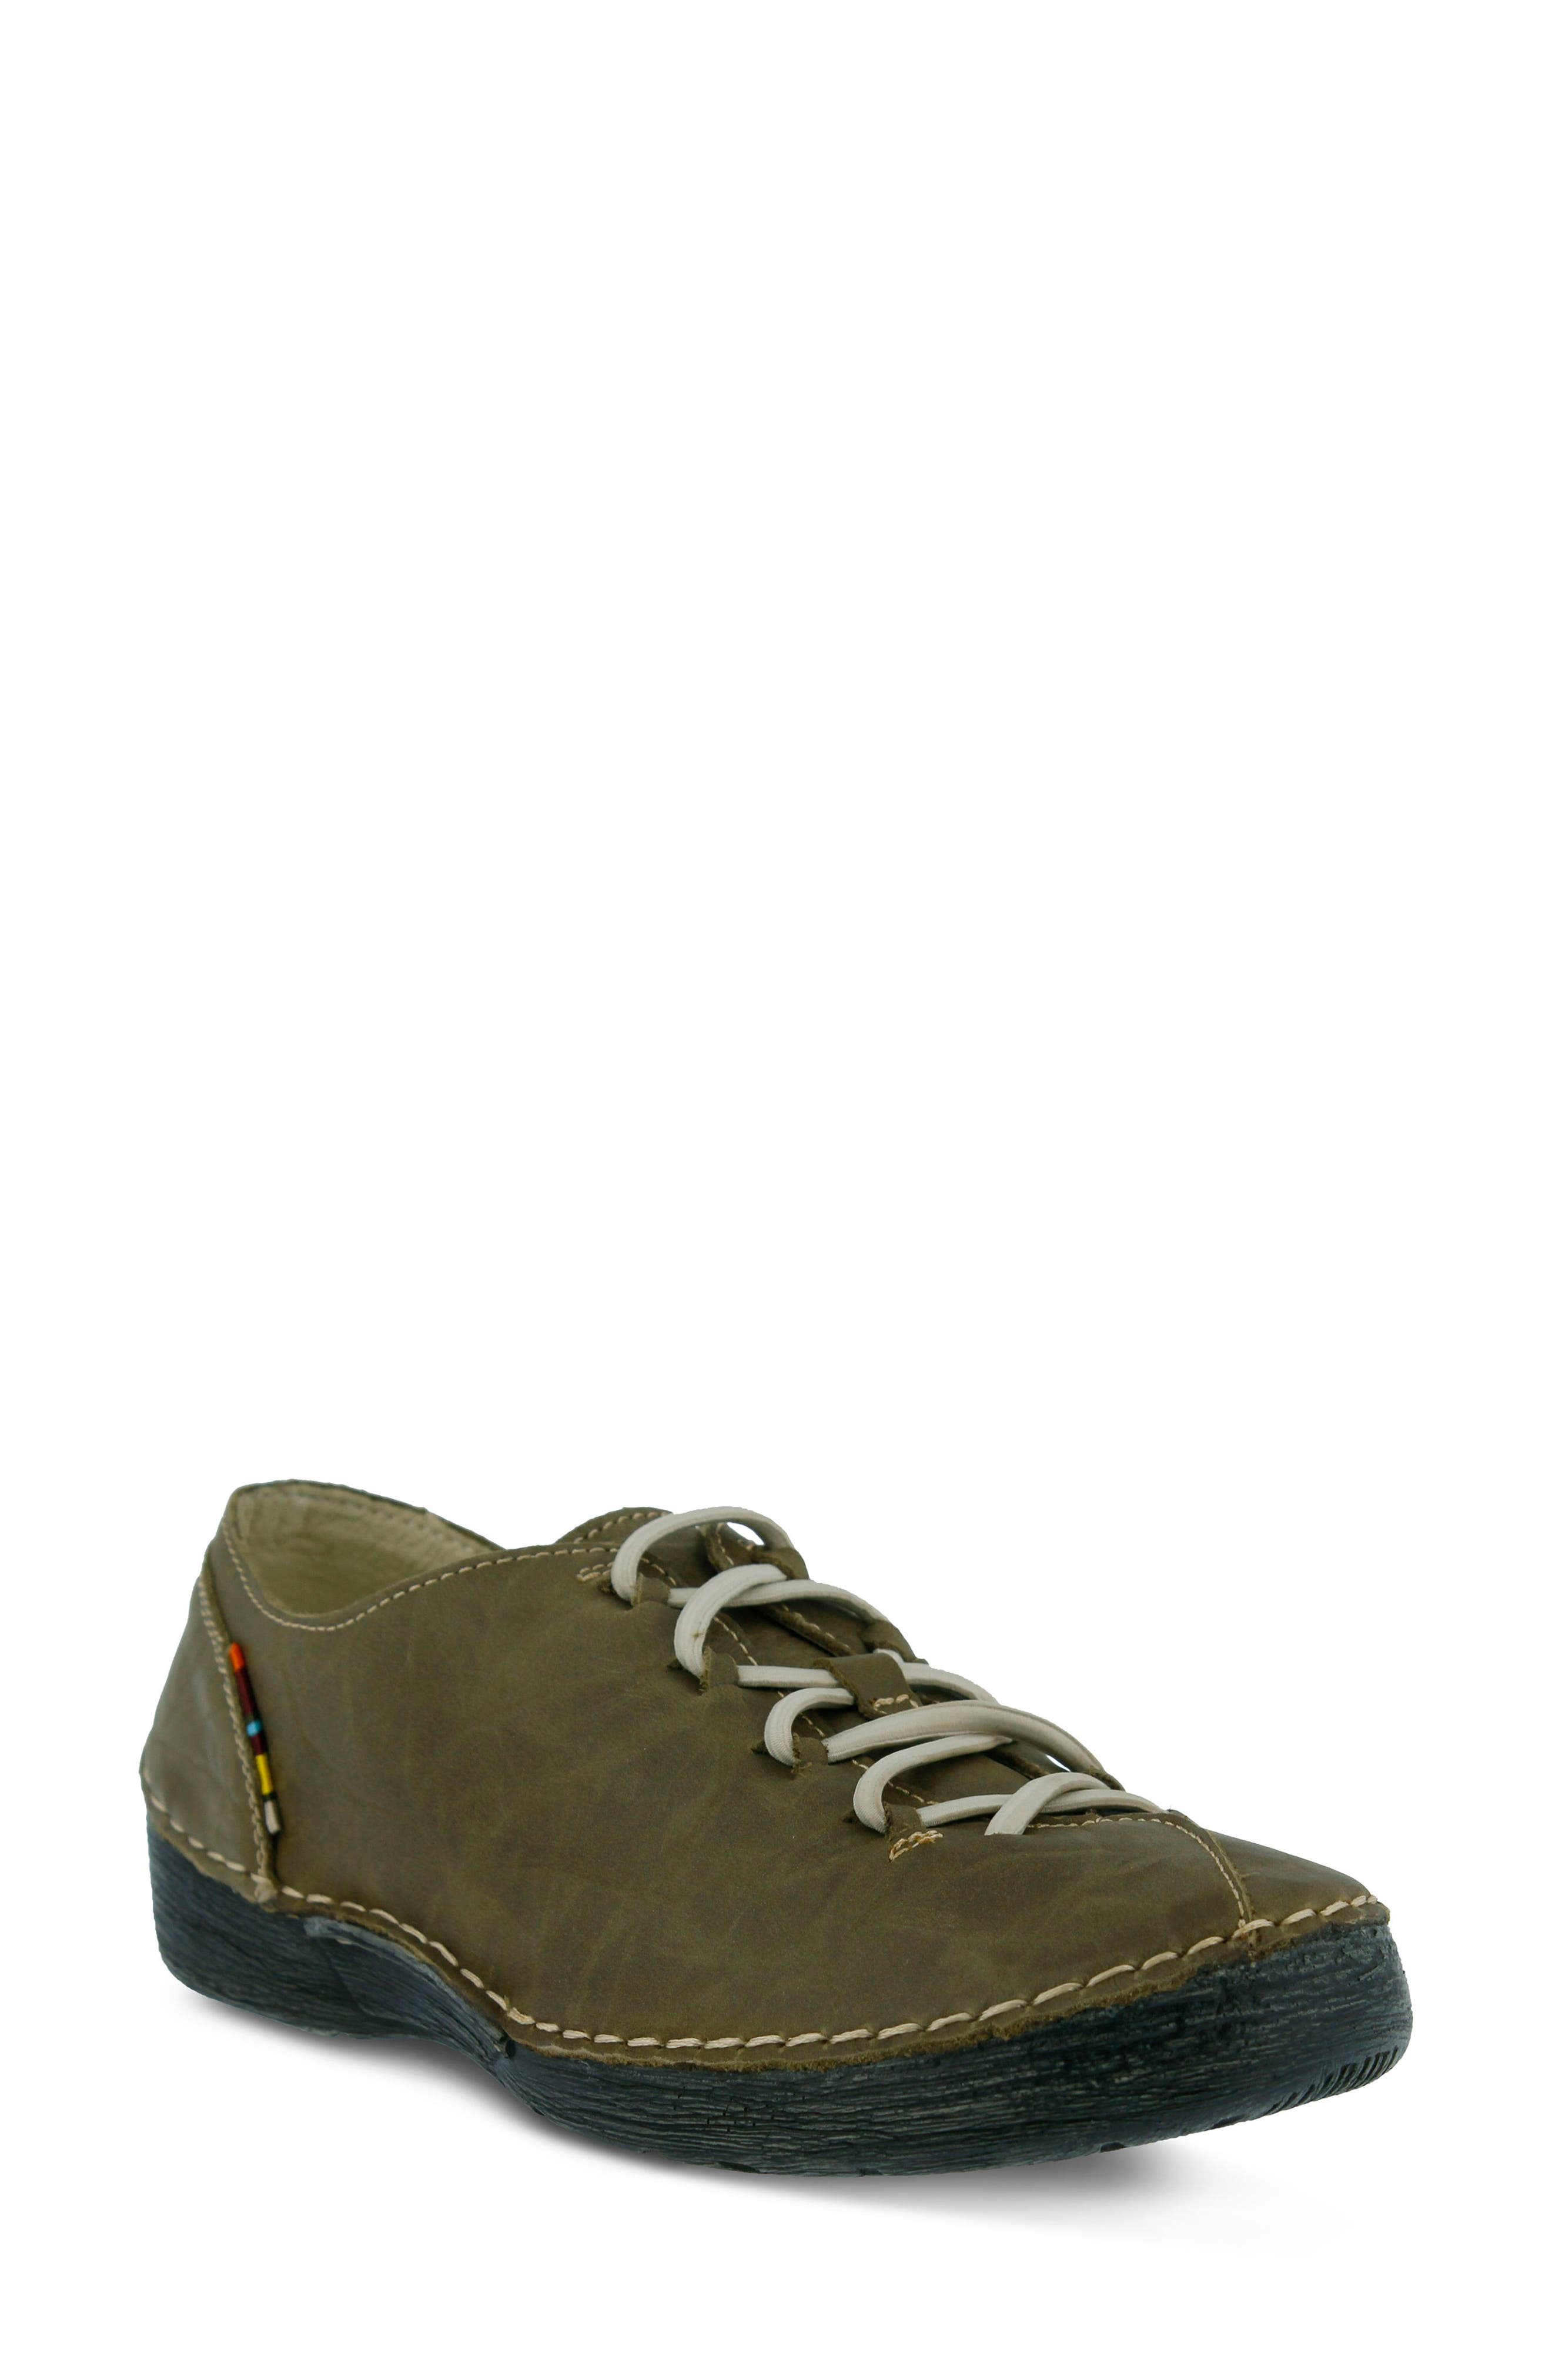 Carhop Sneaker,                             Main thumbnail 1, color,                             OLIVE GREEN LEATHER